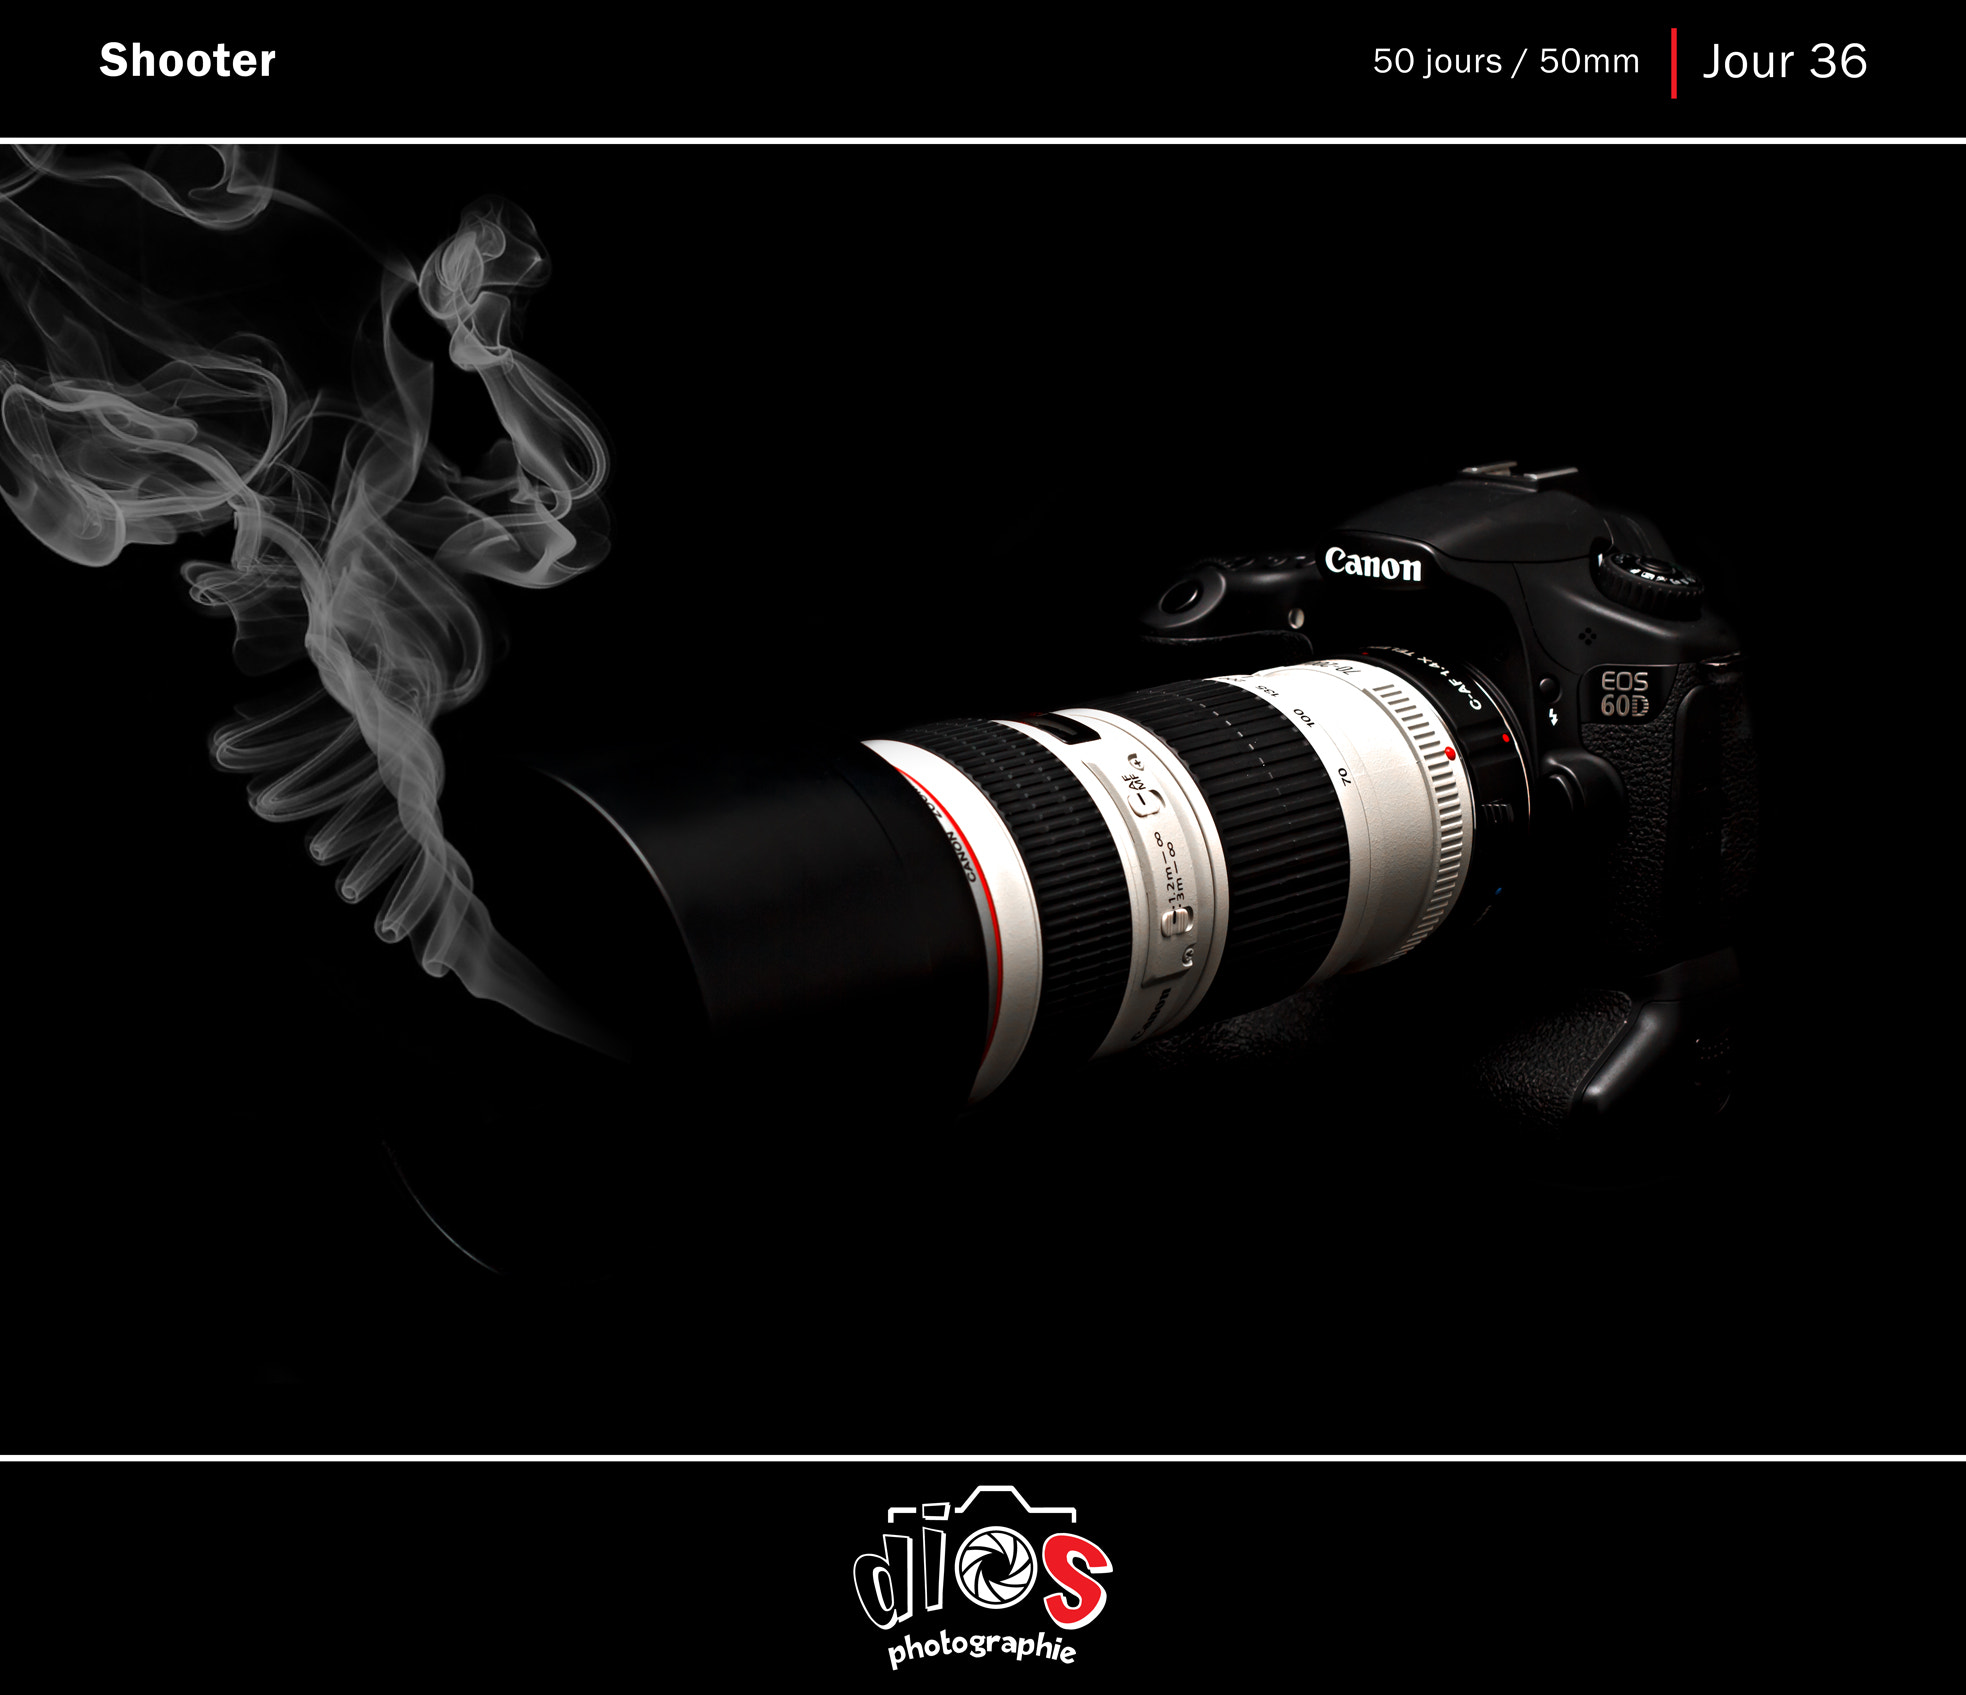 Photograph Shooter by dios photographie on 500px